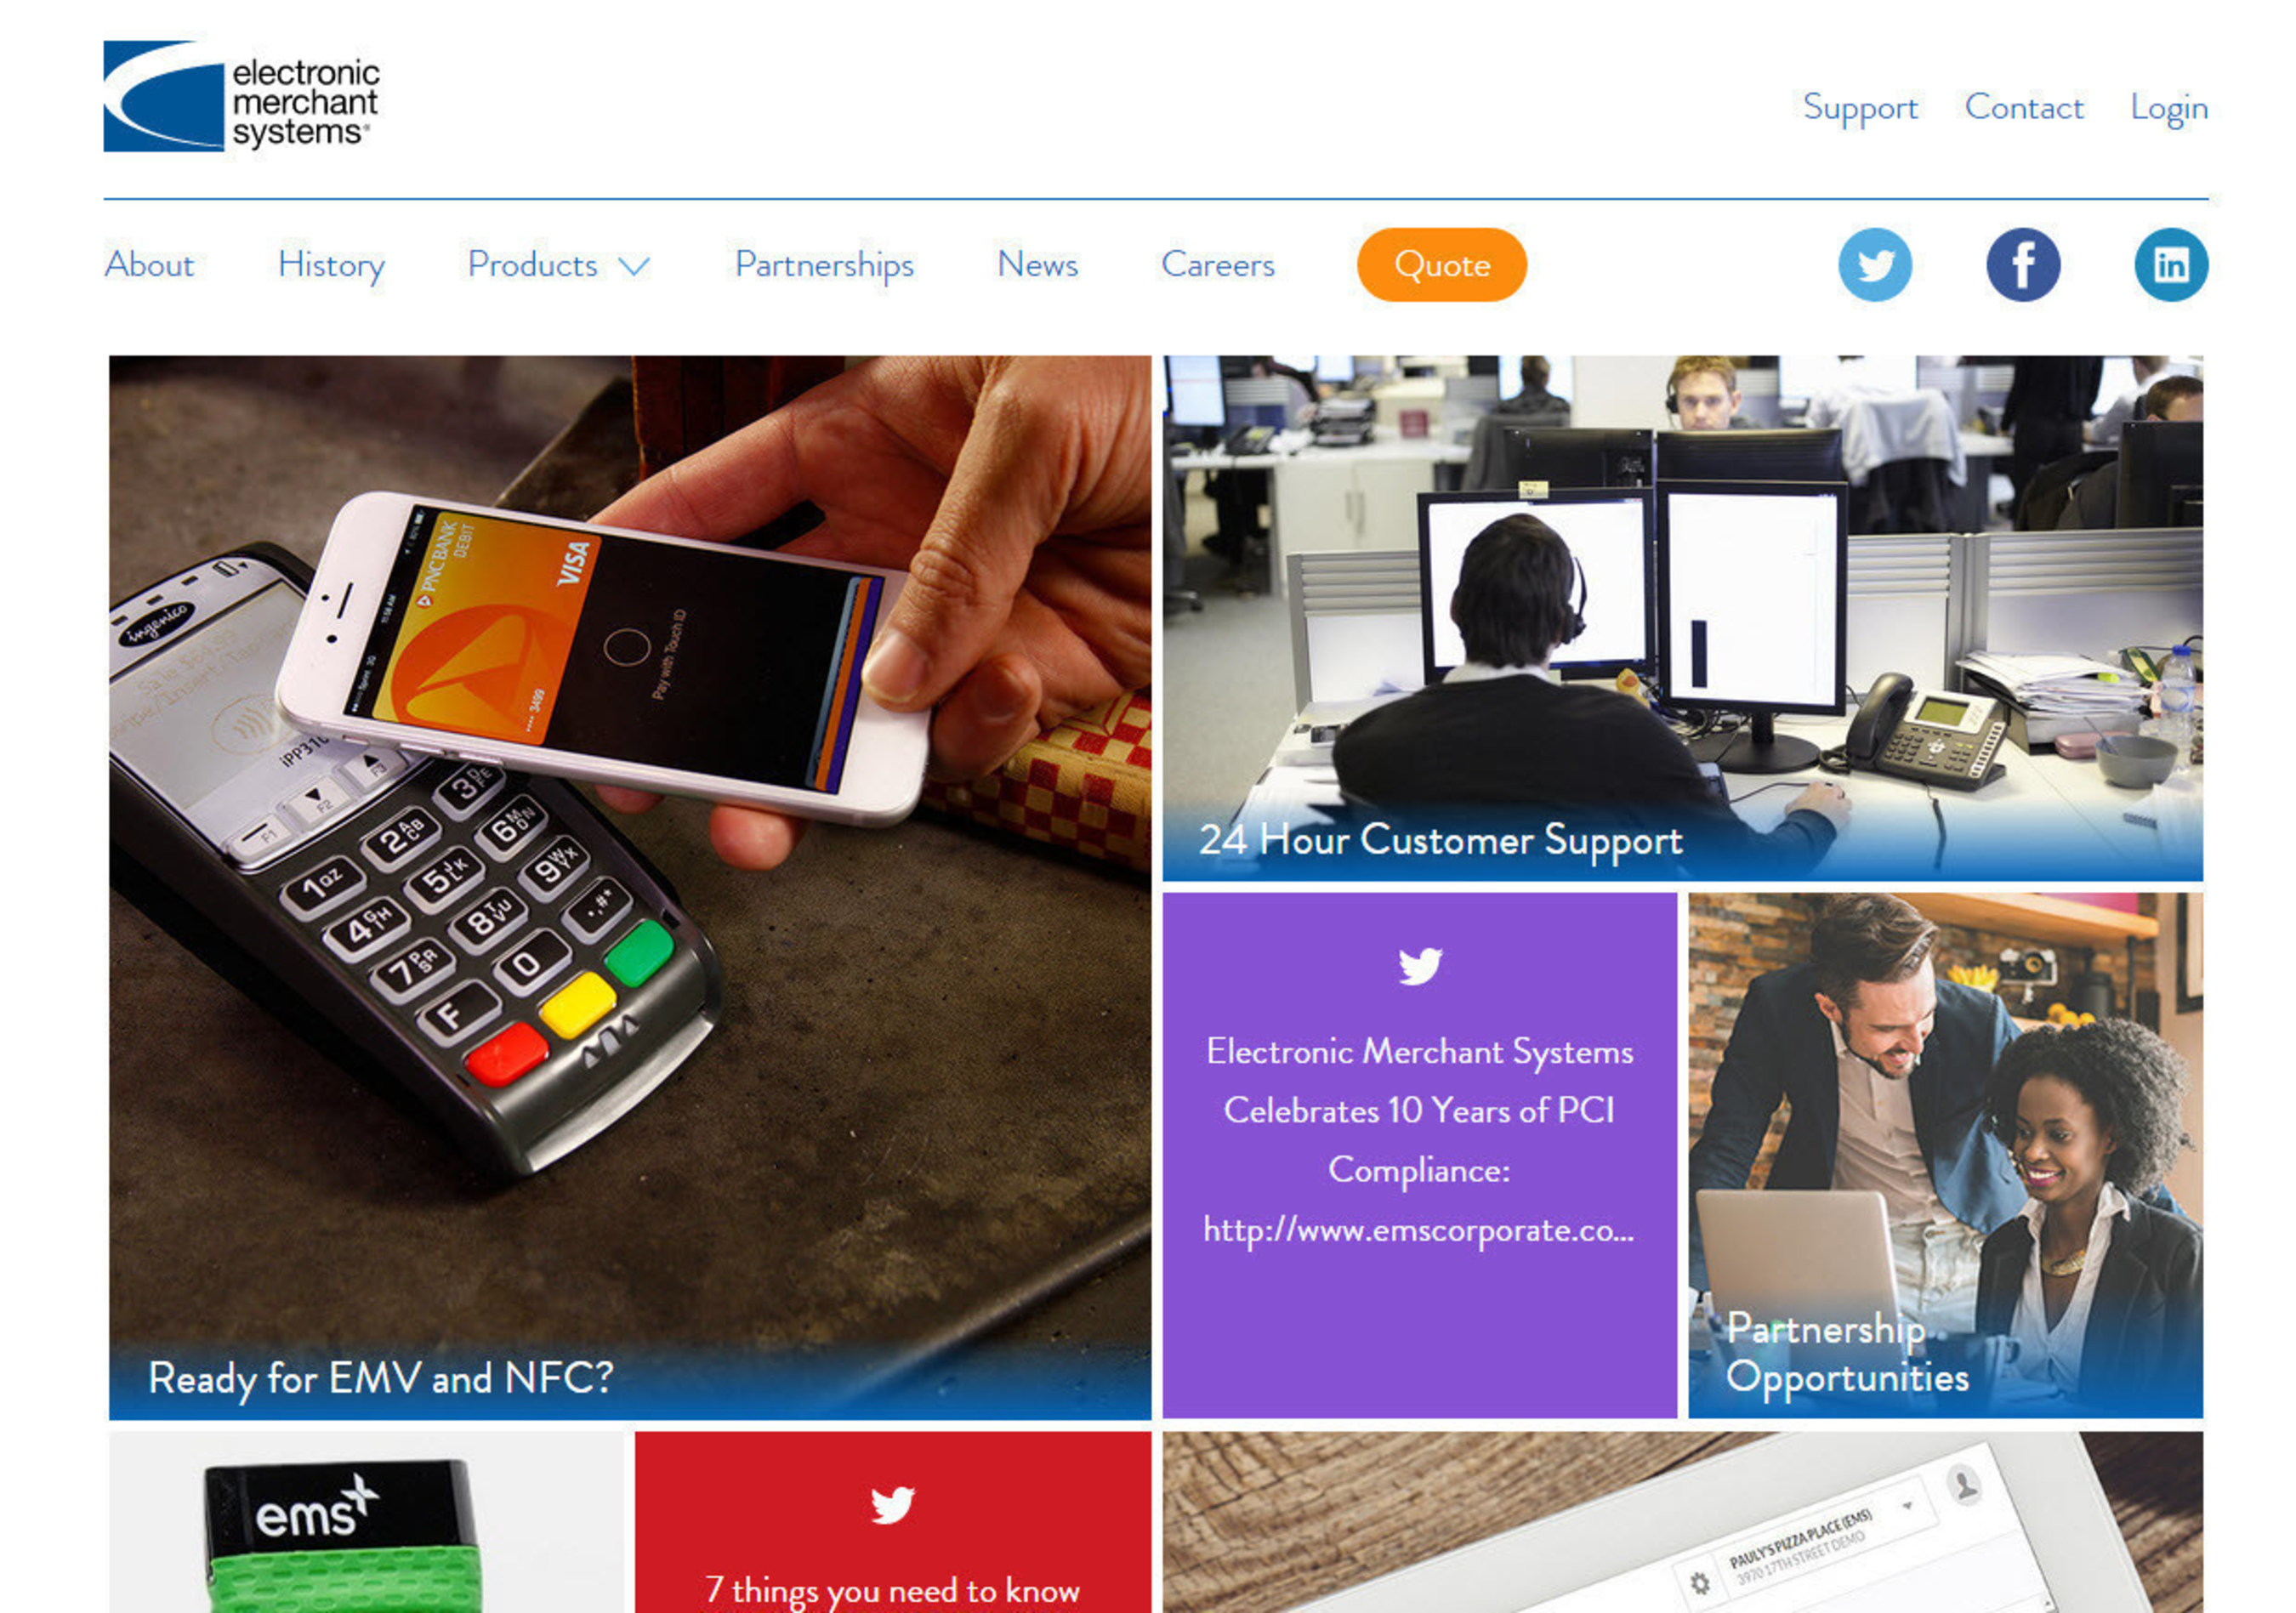 Electronic Merchant Systems Launches New Corporate Website